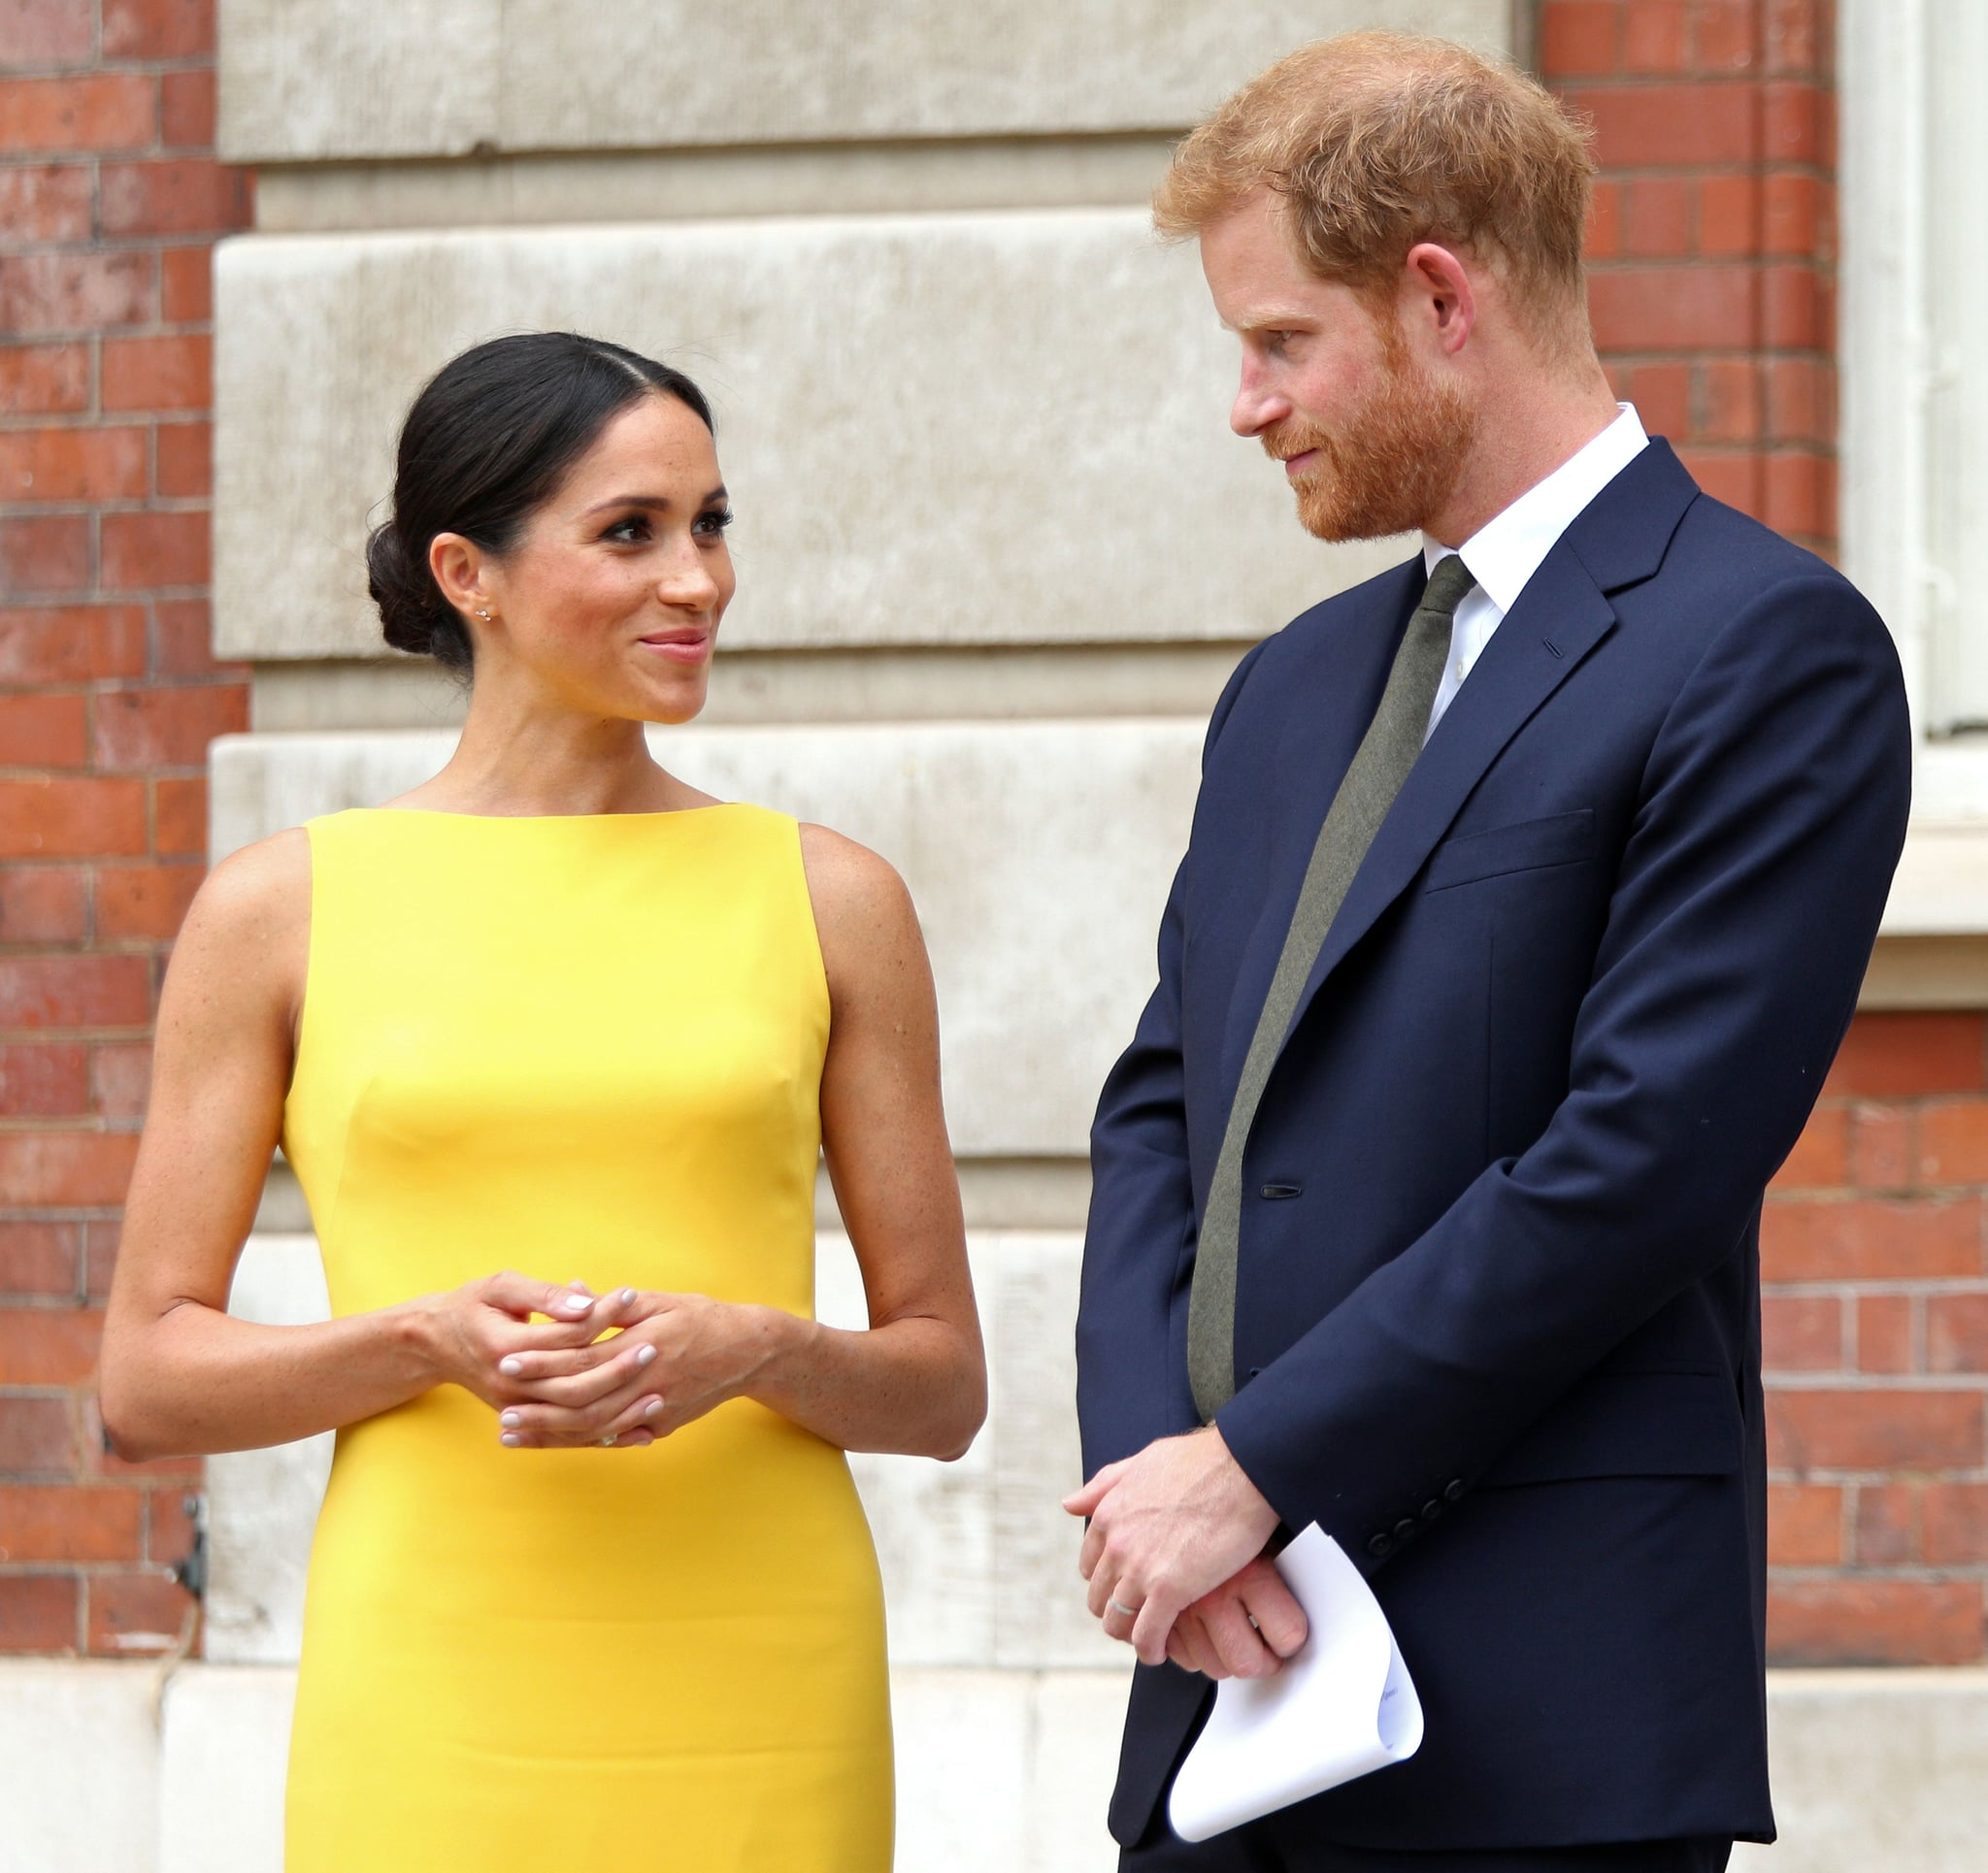 Britain's Prince Harry, Duke of Sussex (R), Britain's Meghan, Duchess of Sussex arrive to attend a reception marking the culmination of the Commonwealth Secretariats Youth Leadership Workshop, at Marlborough House in London on July 5, 2018. (Photo by Yui MOK / POOL / AFP)        (Photo credit should read YUI MOK/AFP/Getty Images)